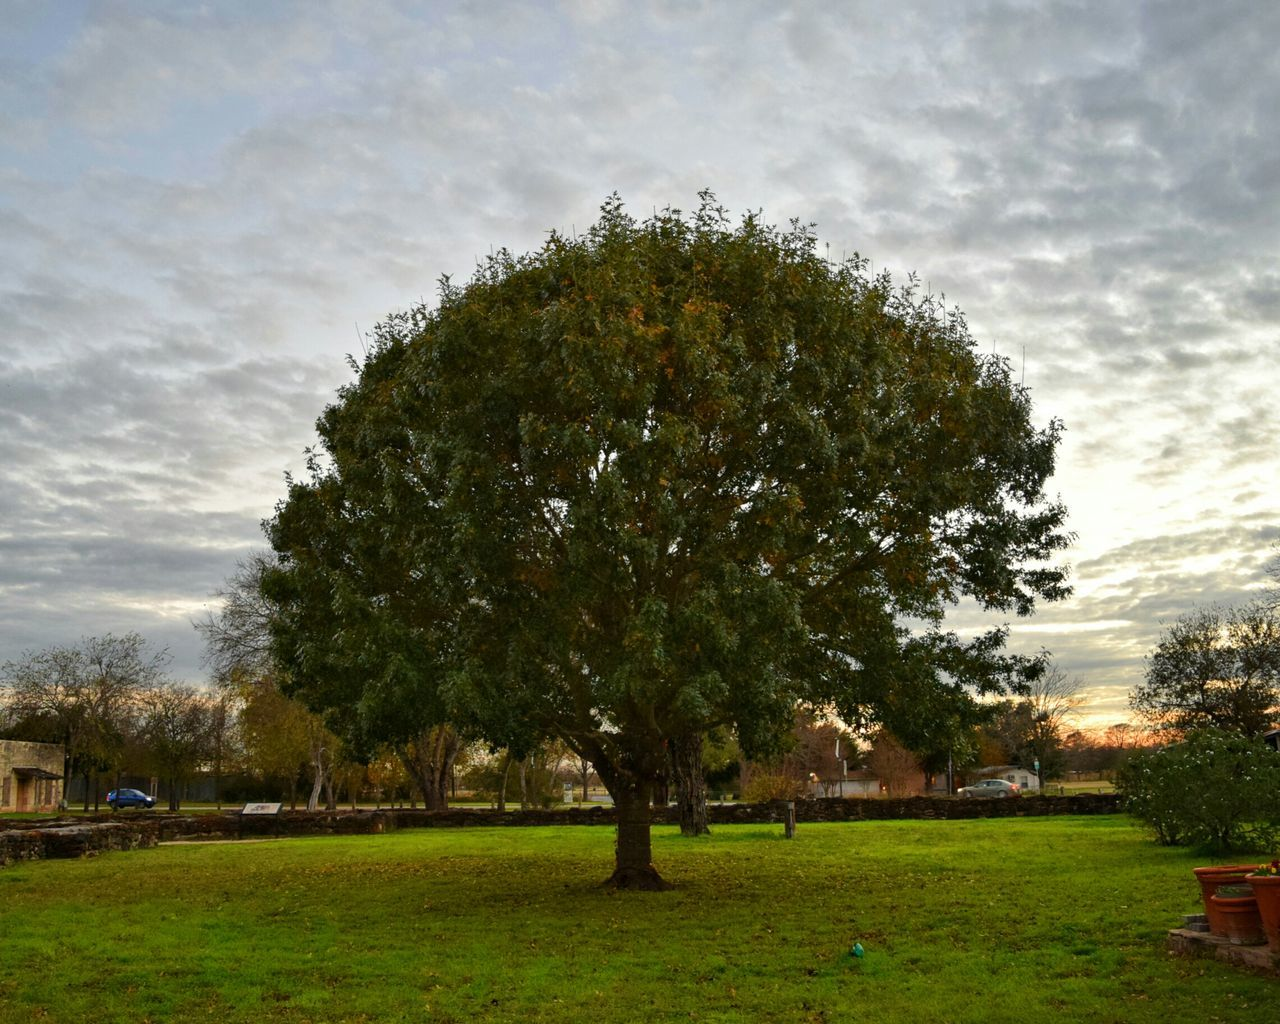 tree, grass, growth, sky, nature, outdoors, no people, day, beauty in nature